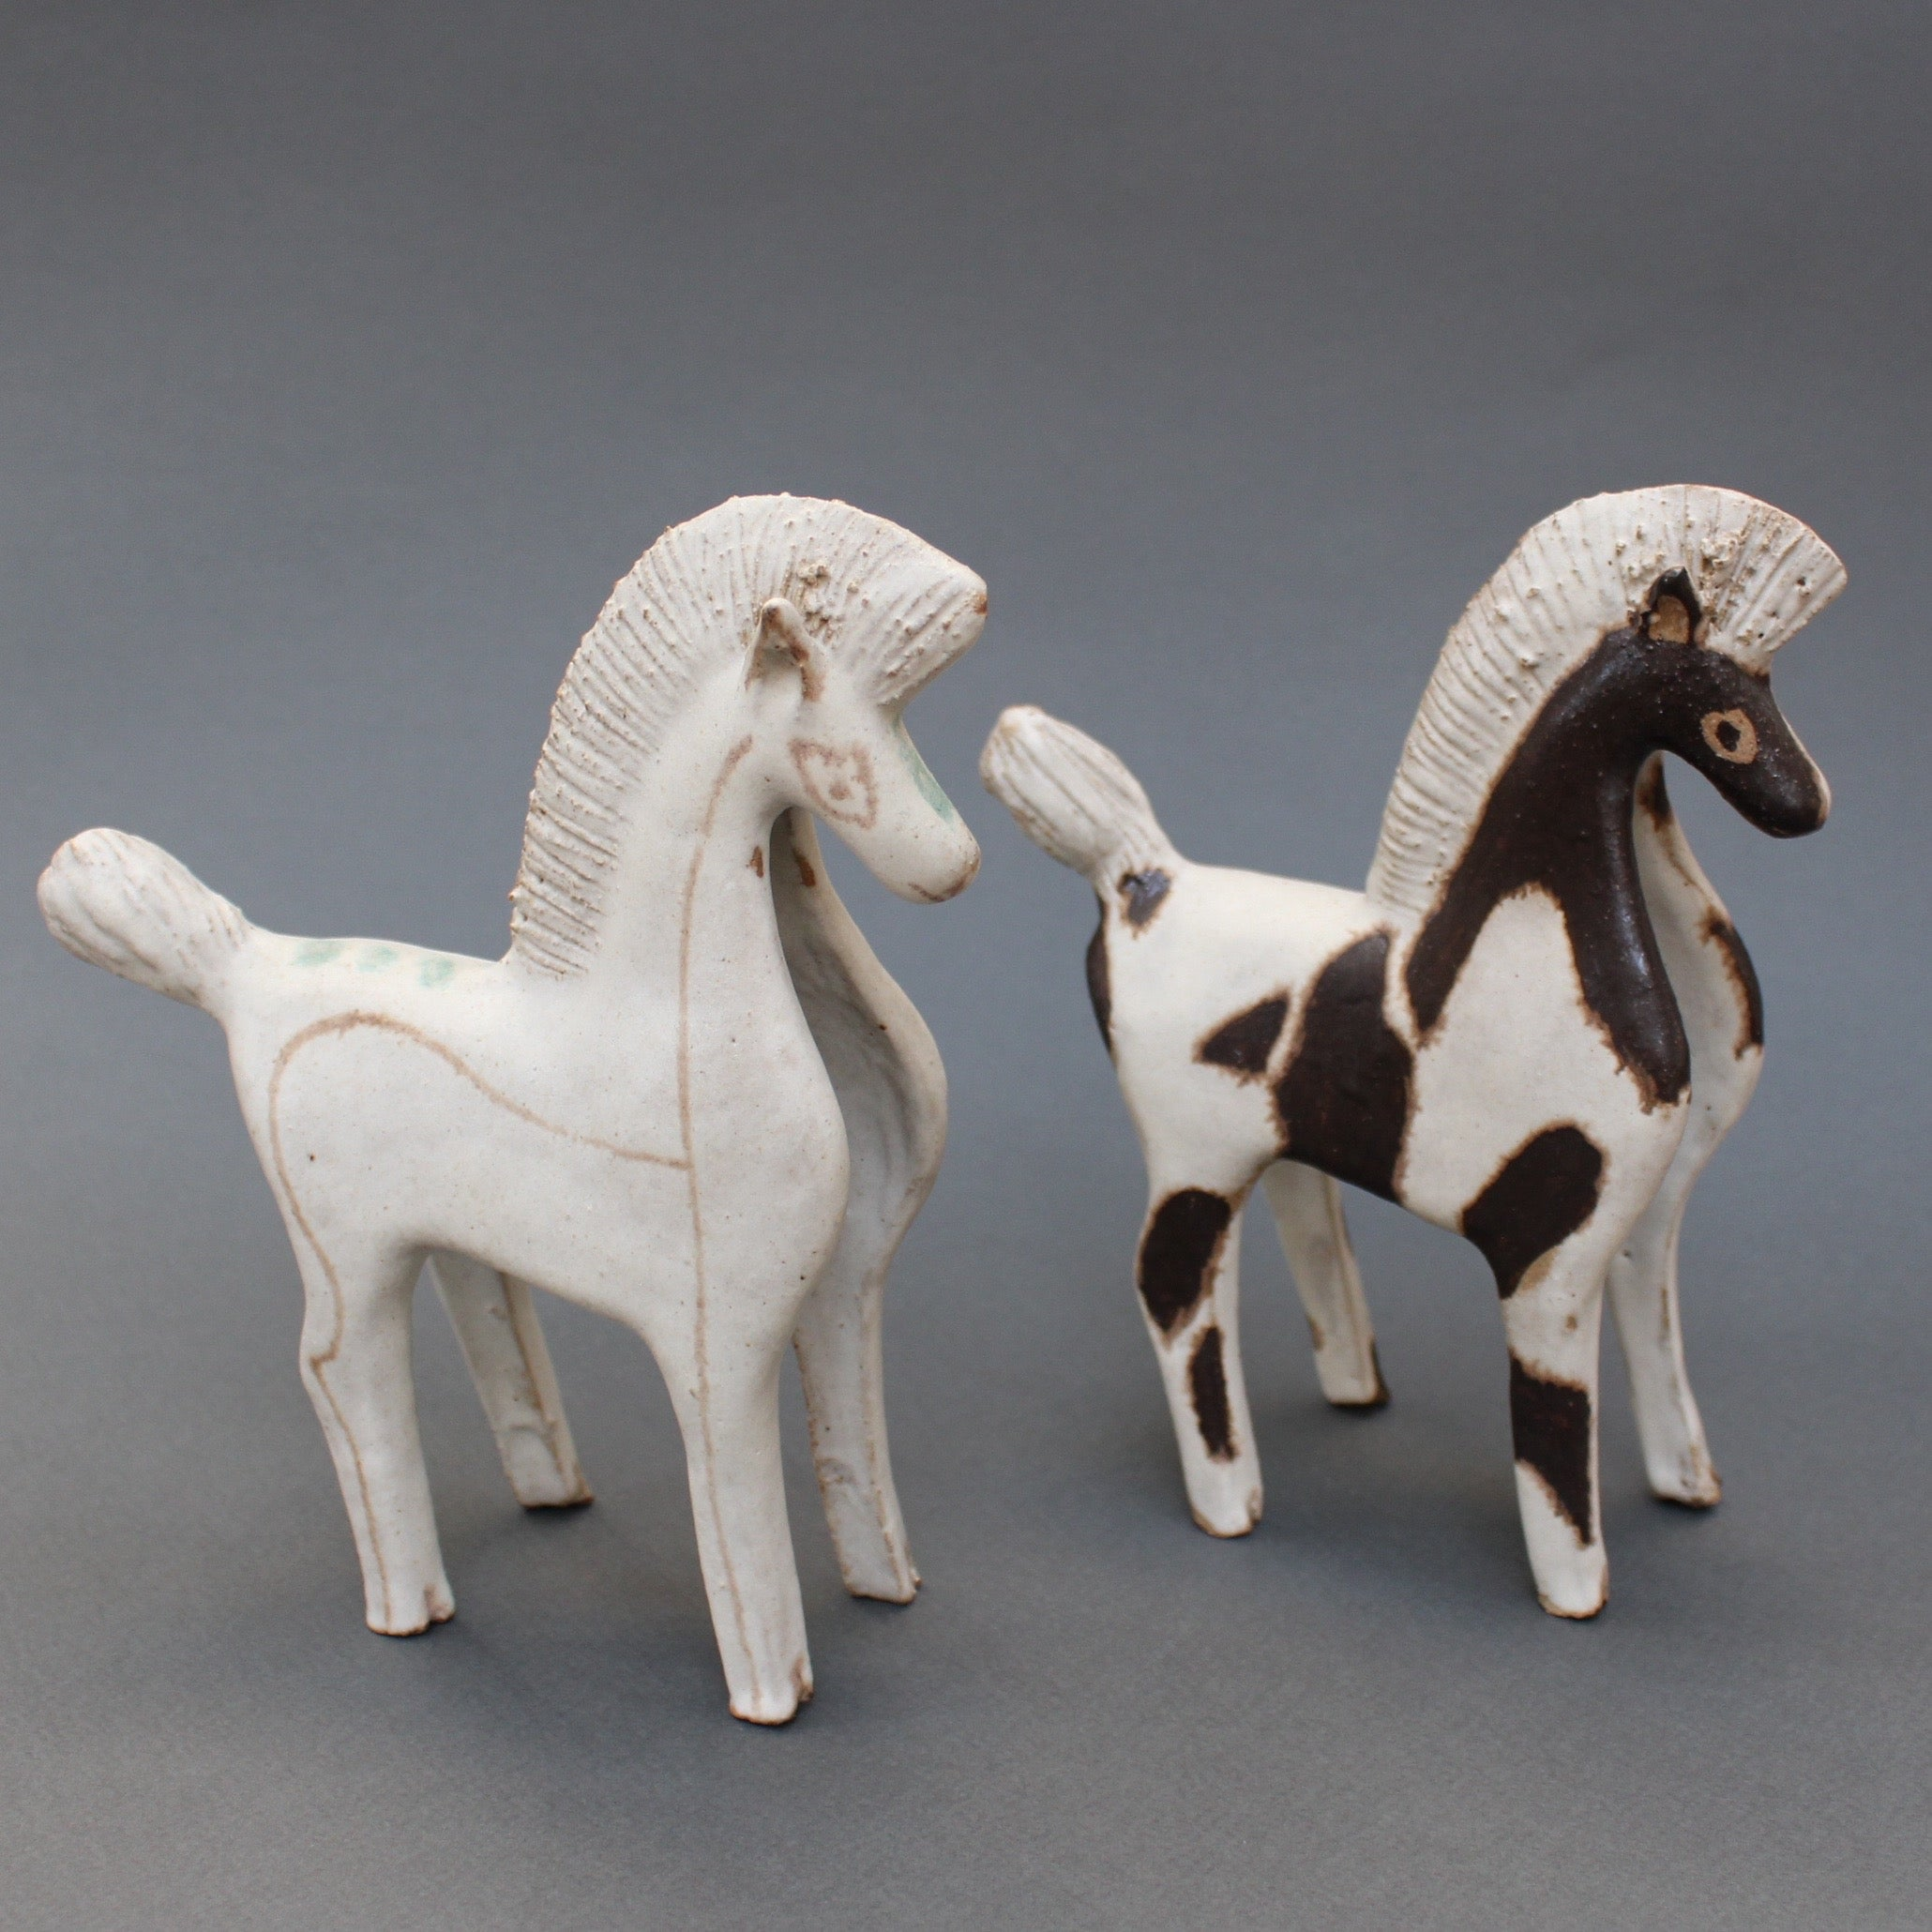 Ceramic White Horse by Bruno Gambone (circa 1970s)